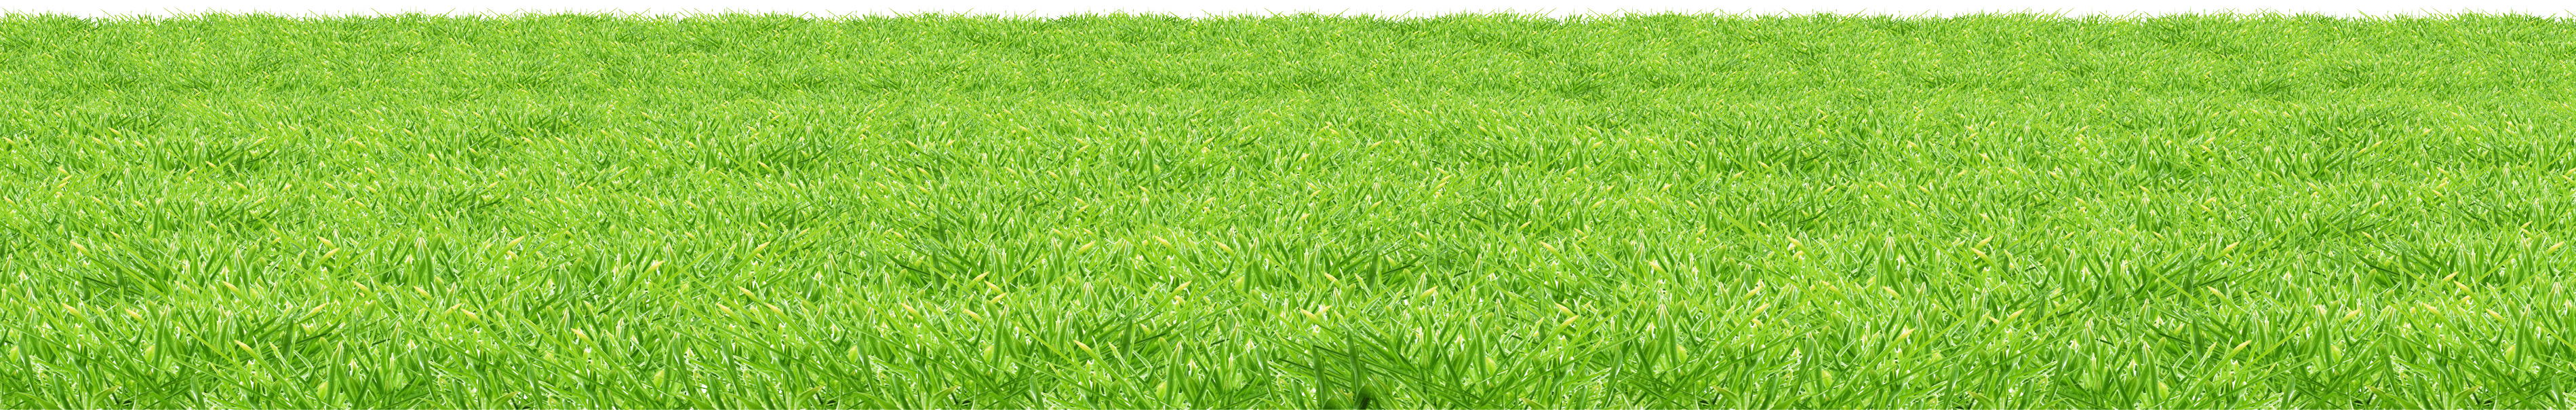 Grass png. Download image green picture